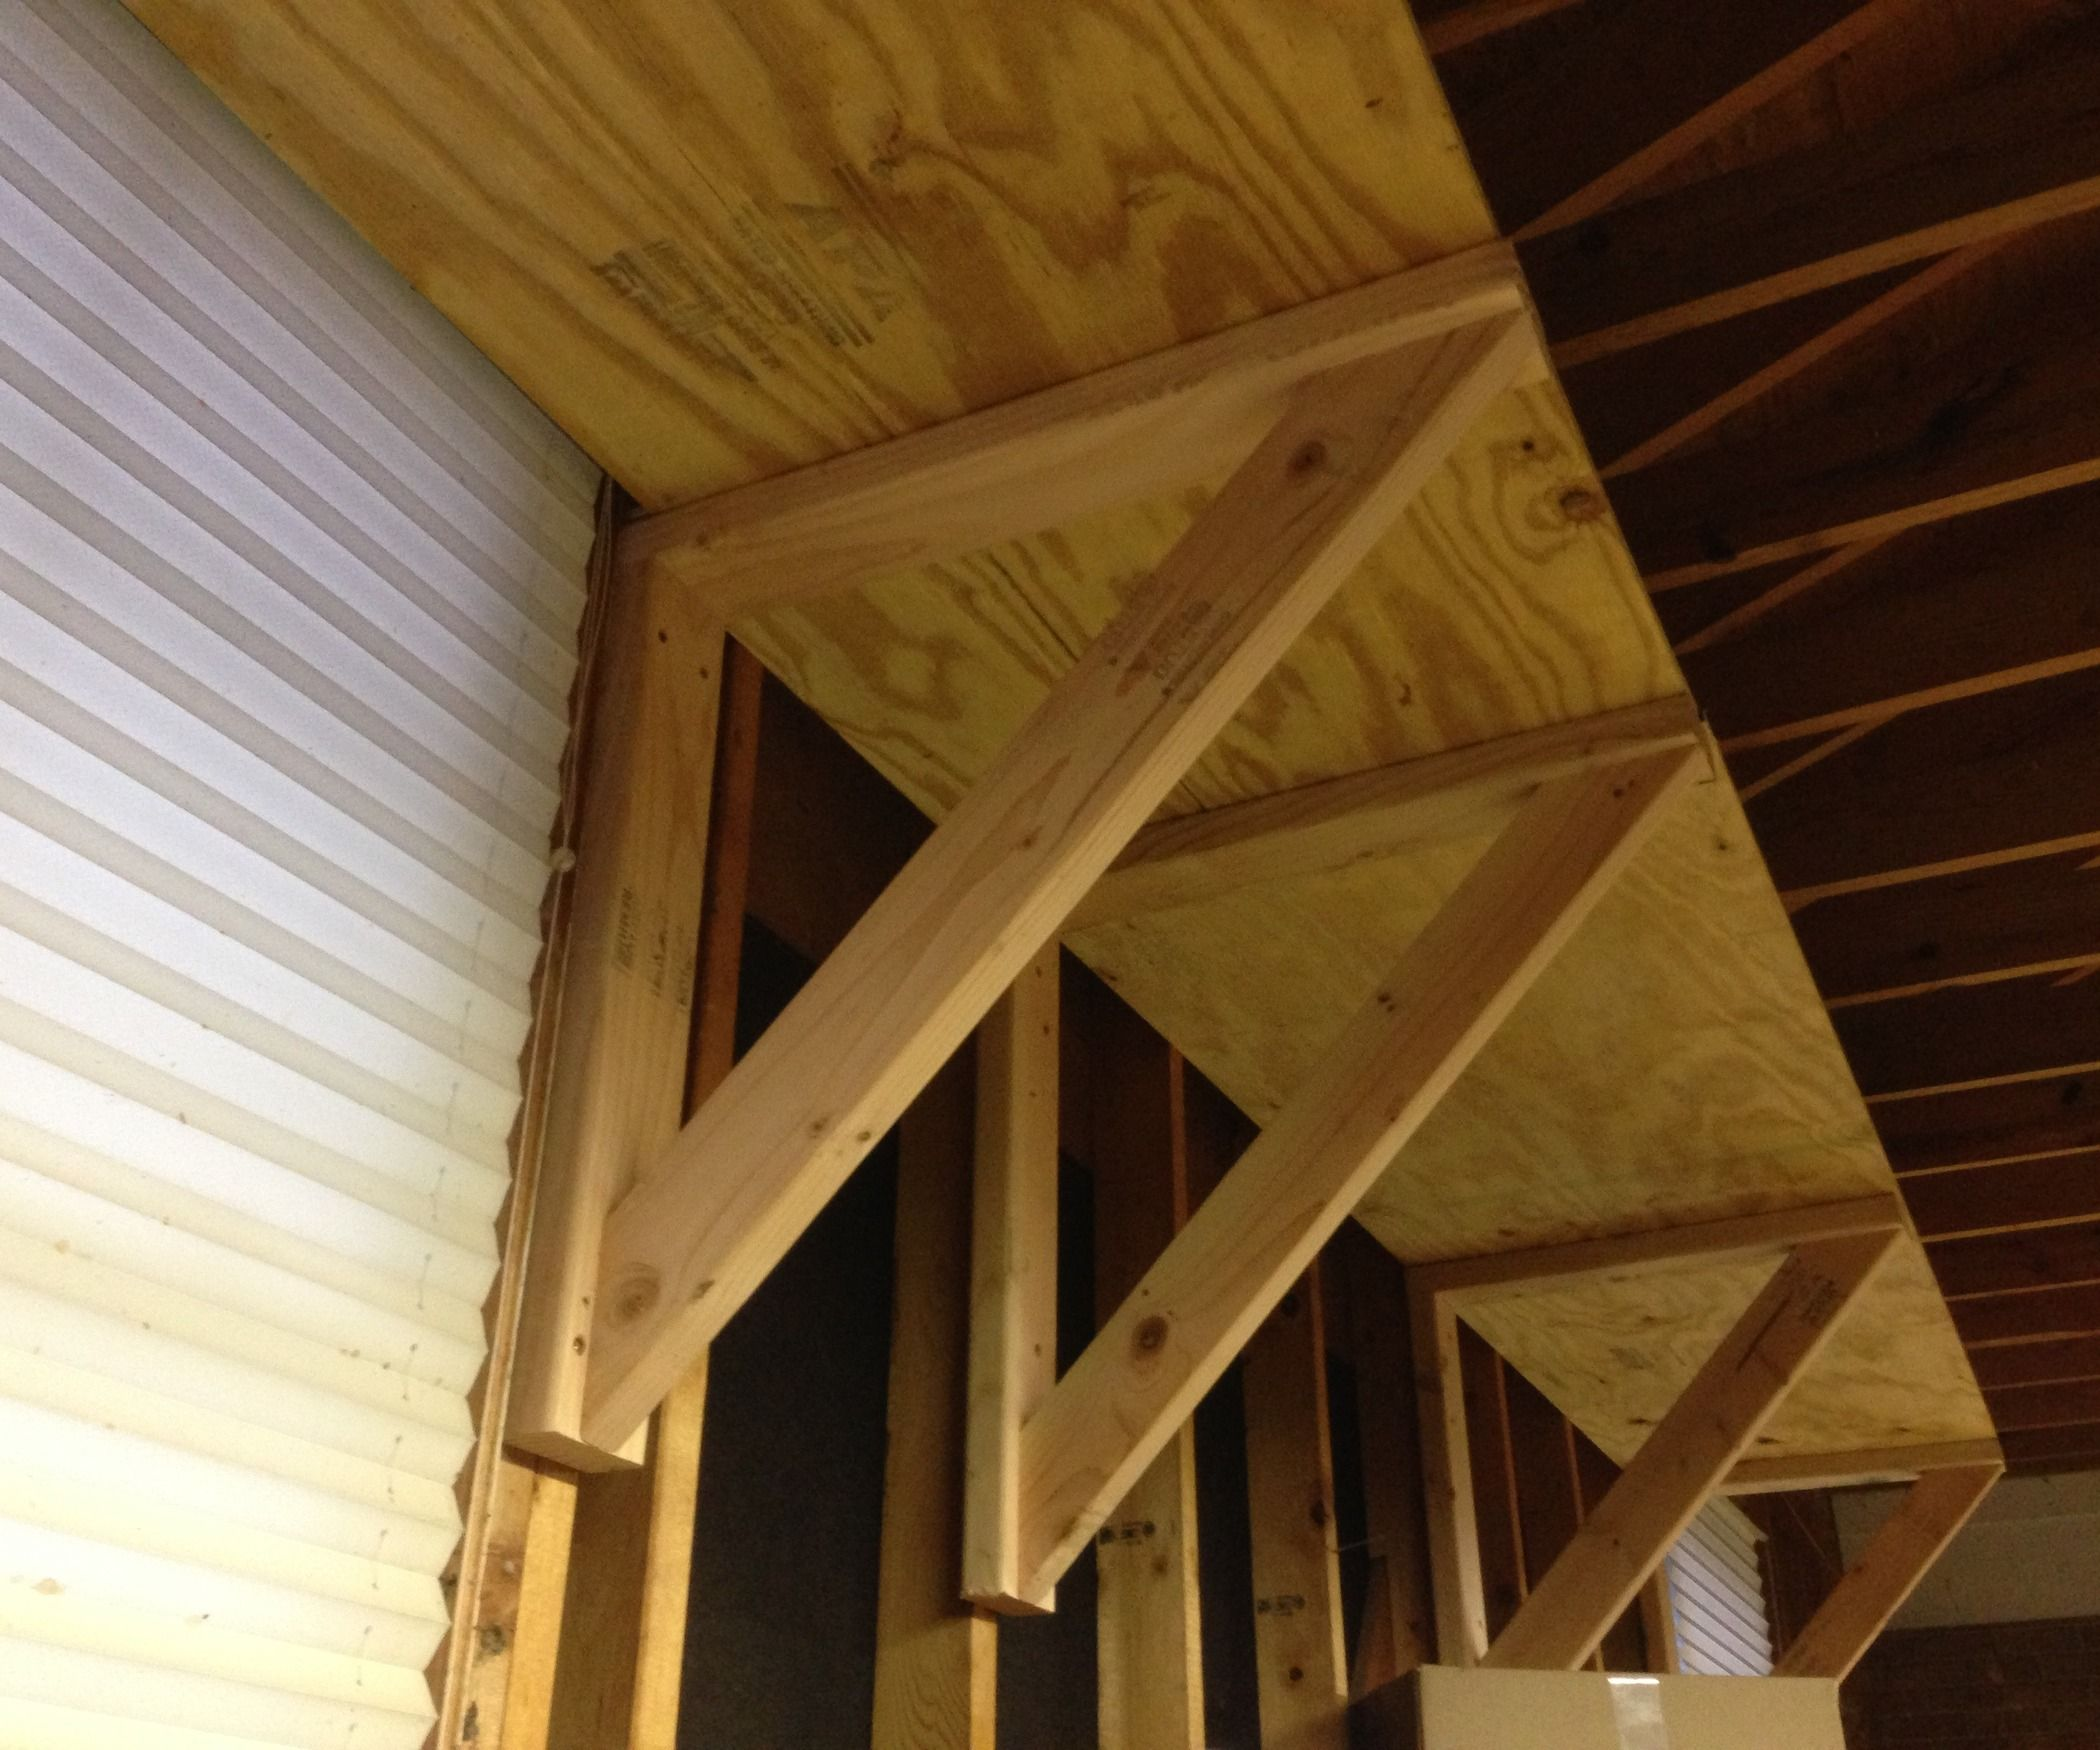 Garage Storage On A Budget Lots Of Ideas And Tutorials Including T How To Build Shelves By Premeditated Leftovers Description From Pinterest